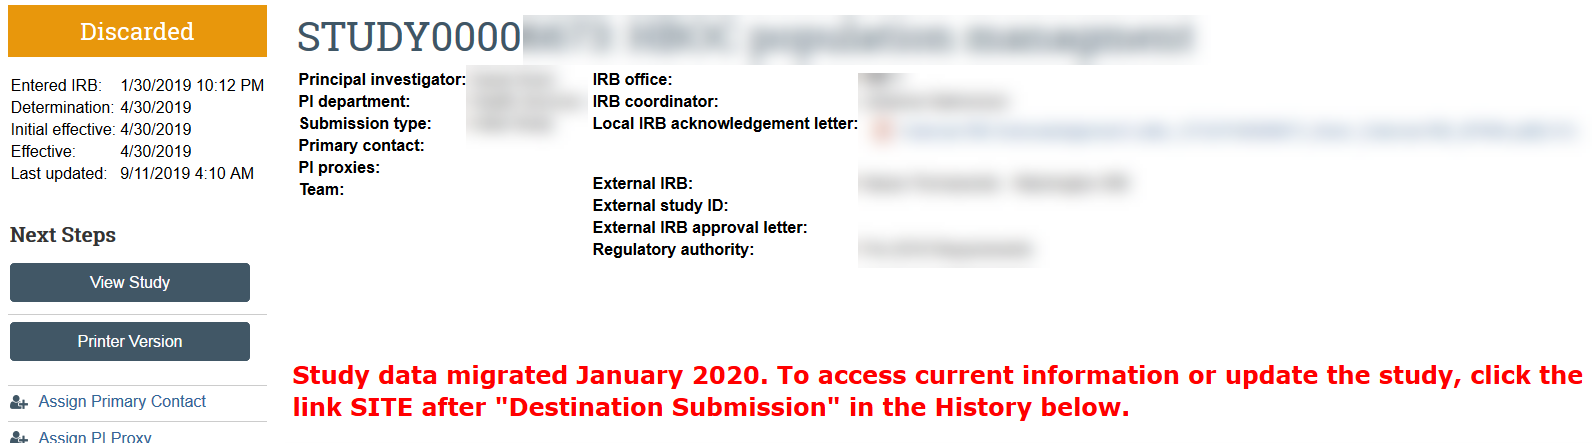 external IRB study discarded due to data migration